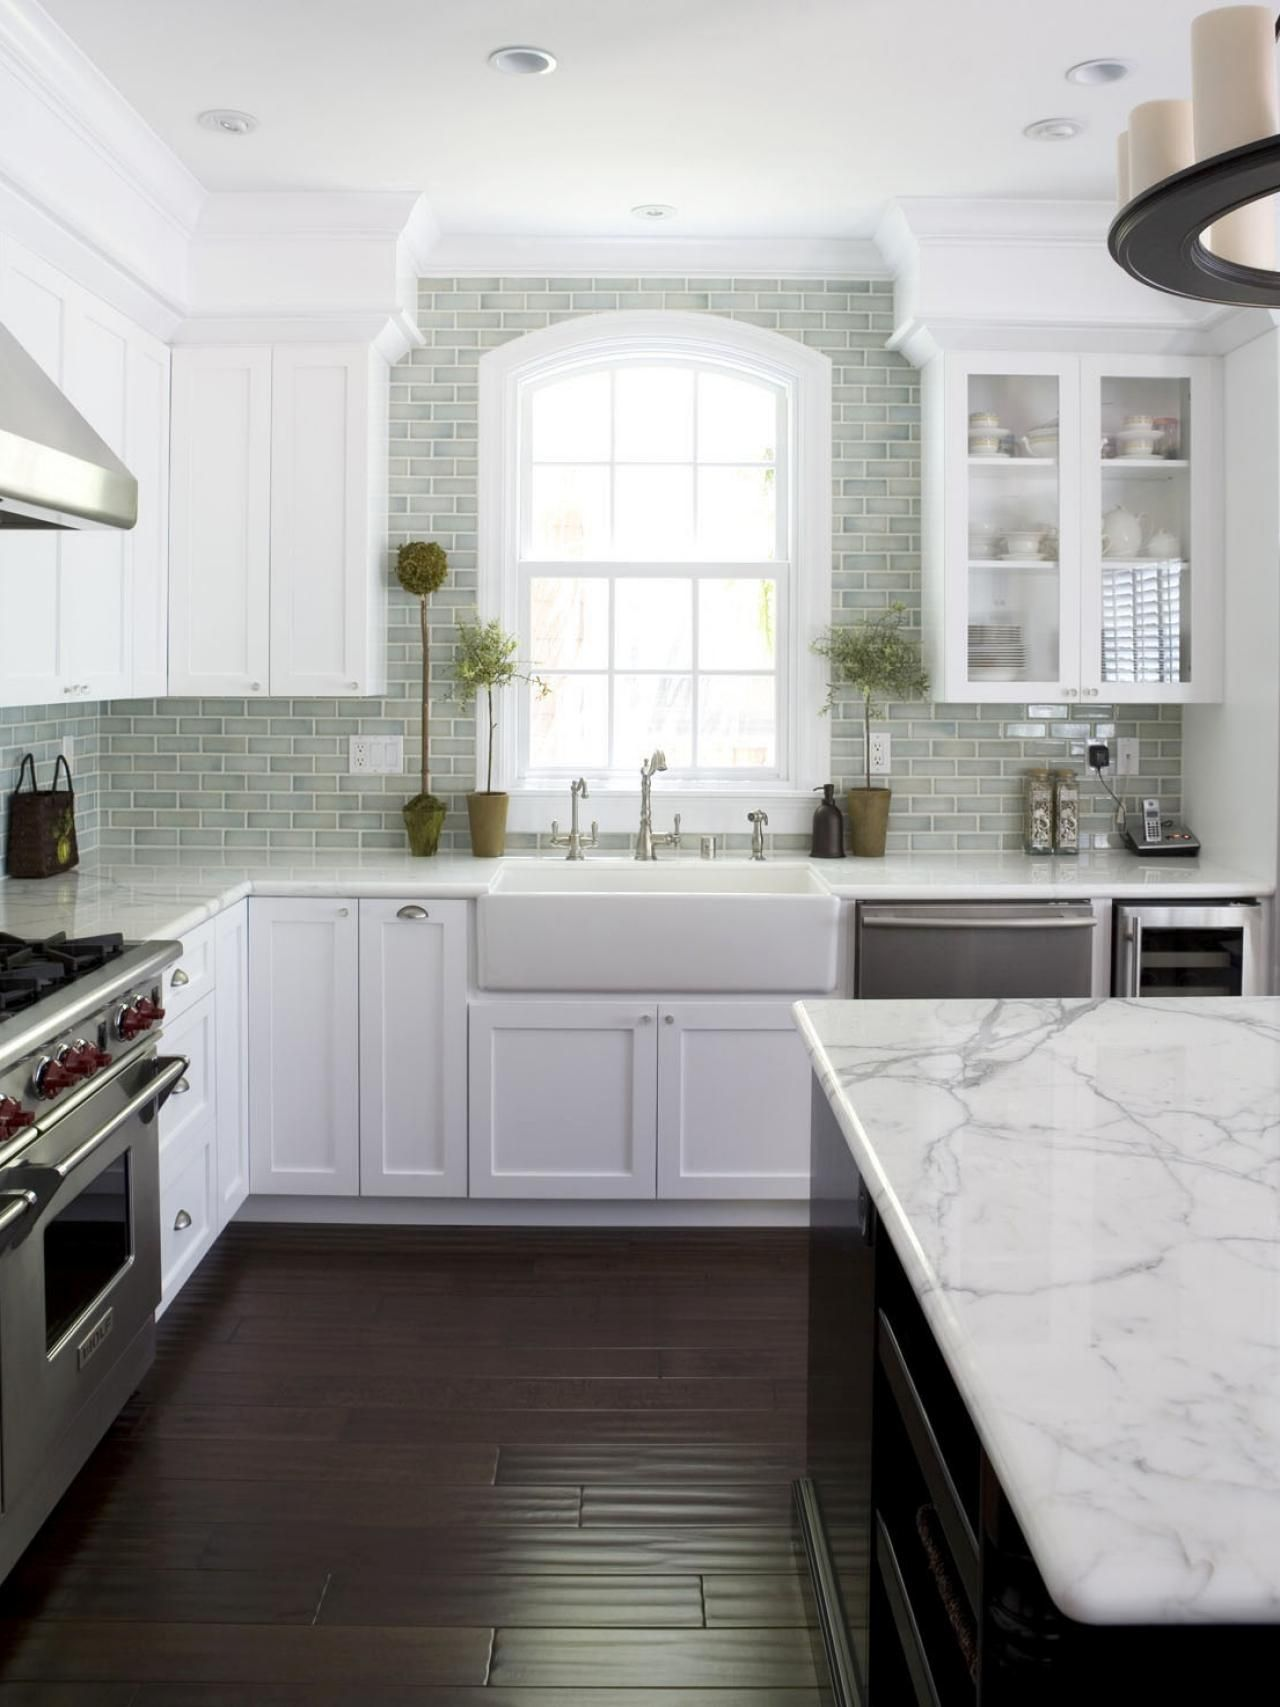 Uncategorized White Kitchen Designs our 55 favorite white kitchens countertops design and cabinets 40 kitchen ideas with islands backsplashes